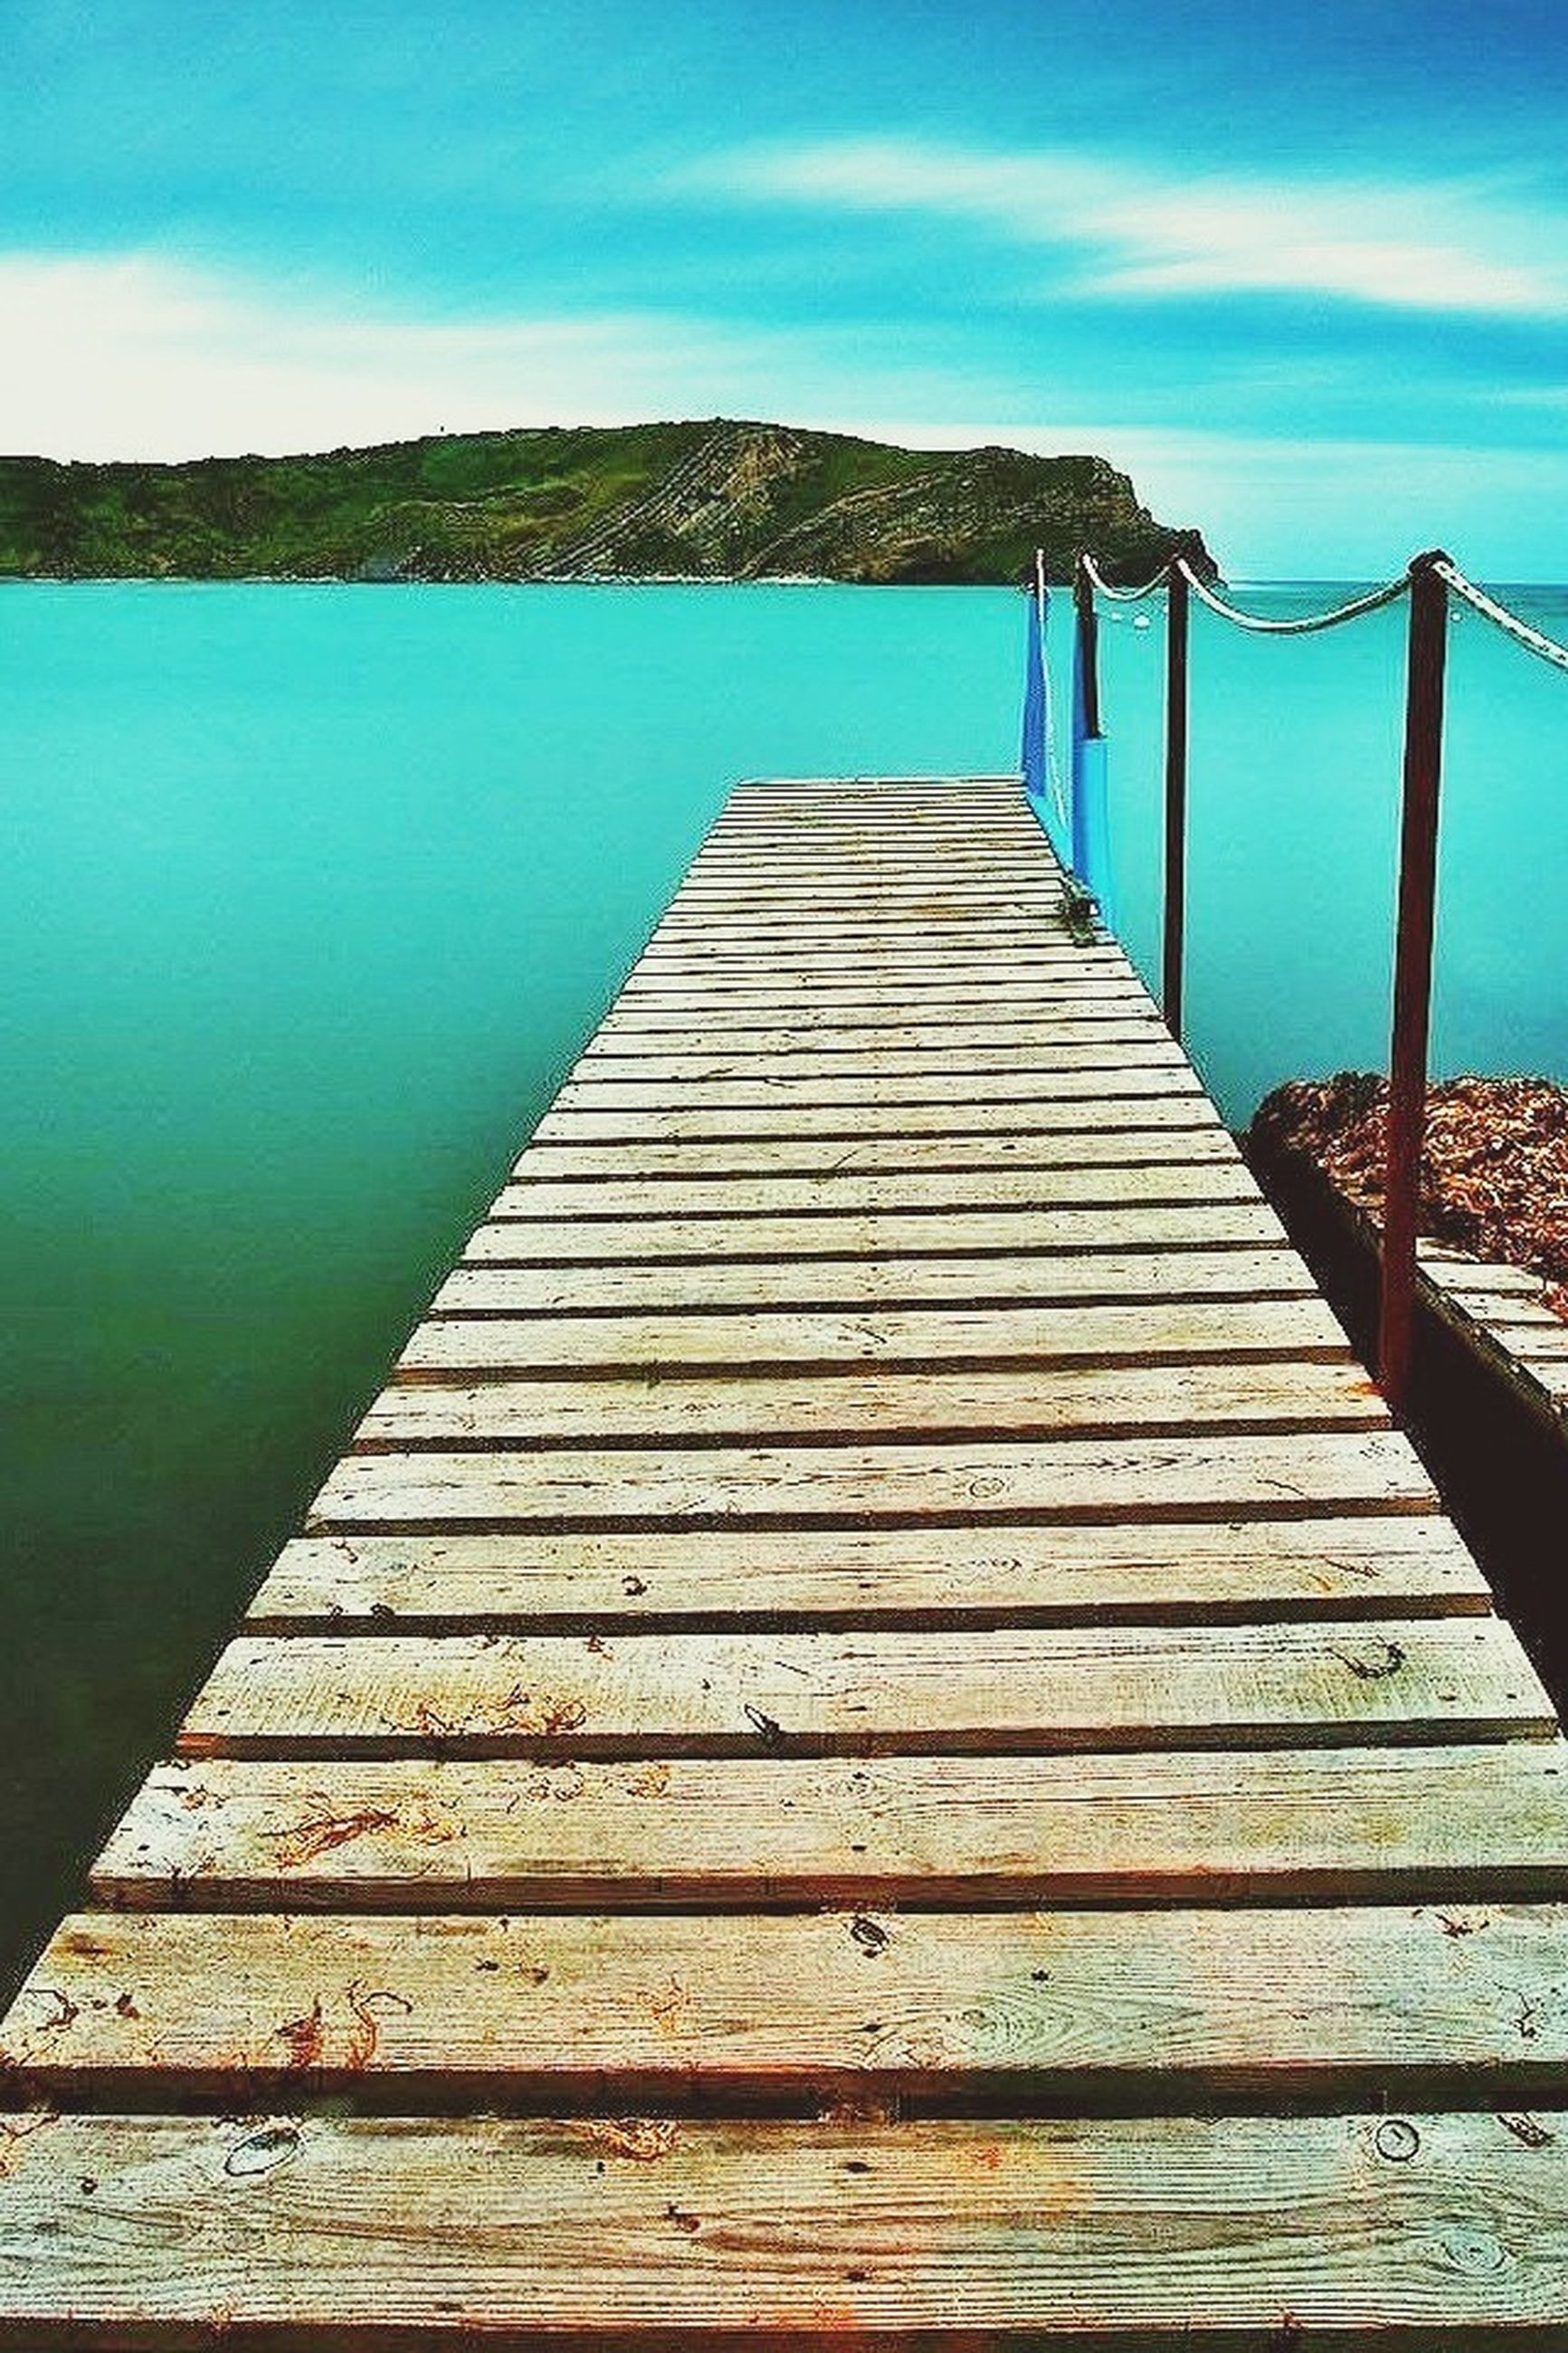 sky, water, wood - material, sea, tranquility, tranquil scene, pier, blue, scenics, nature, beauty in nature, wooden, railing, cloud - sky, wood, cloud, boardwalk, lake, built structure, jetty